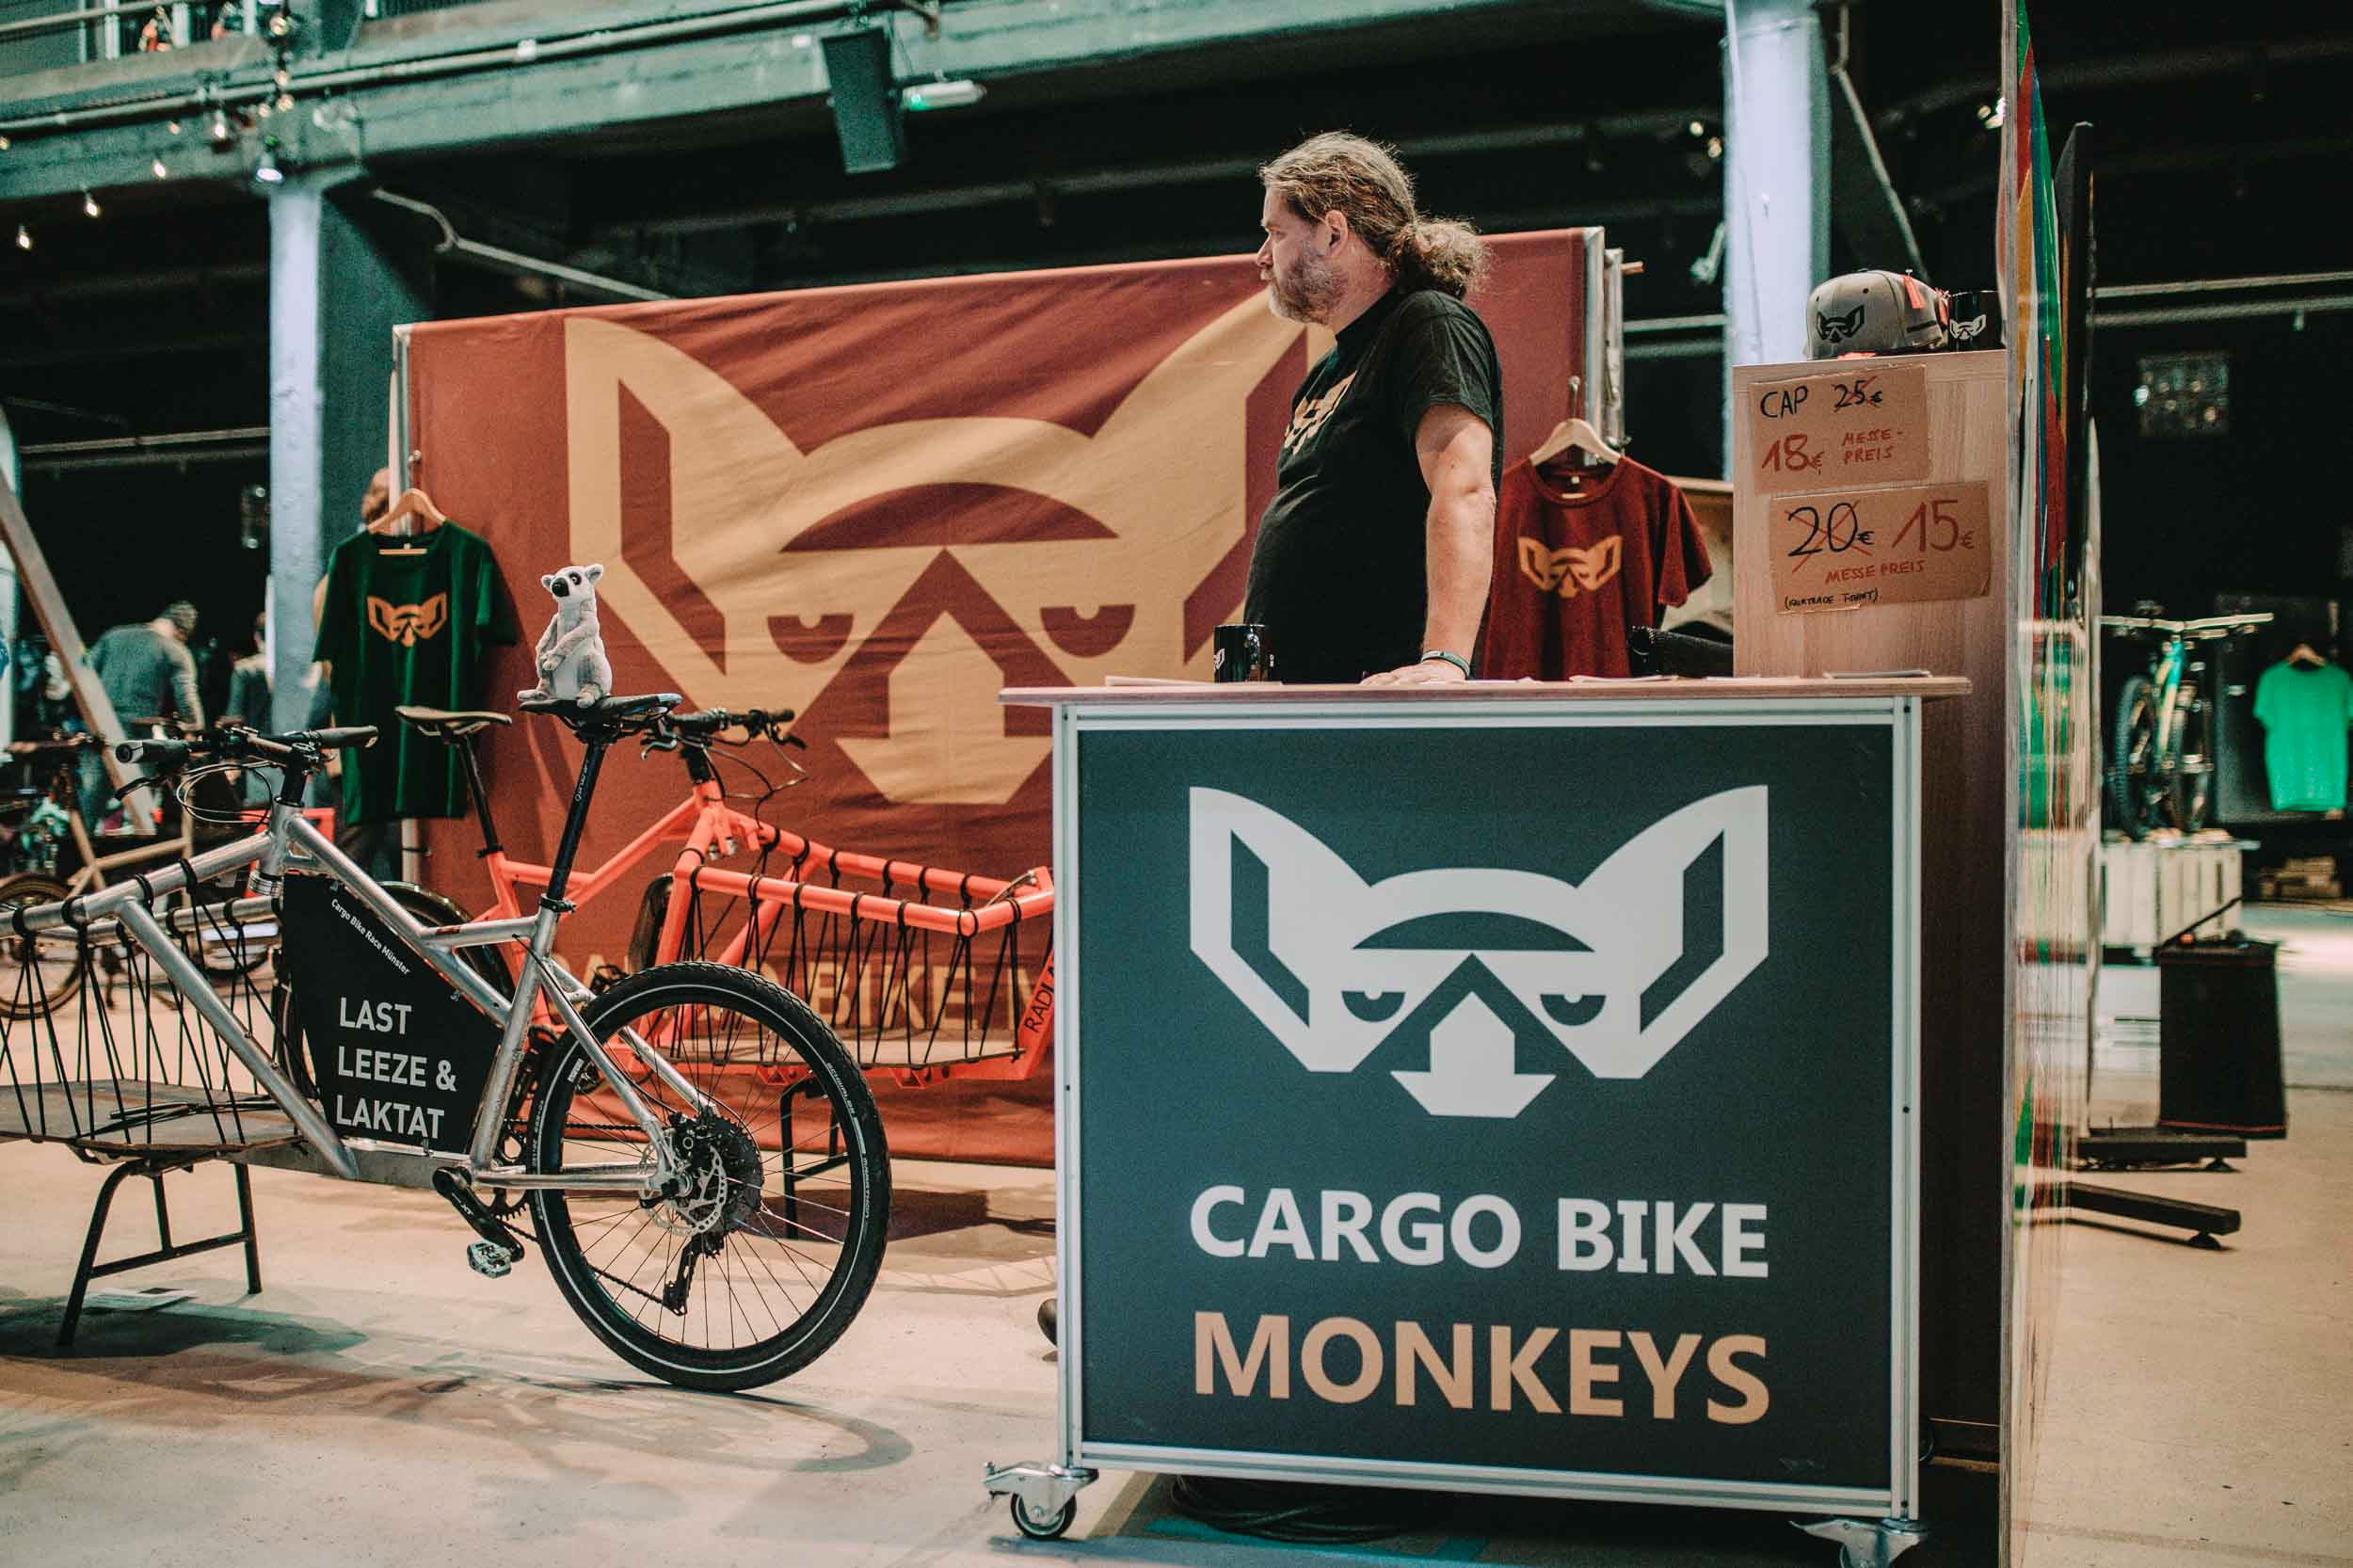 CARGO BIKE MONKEYS